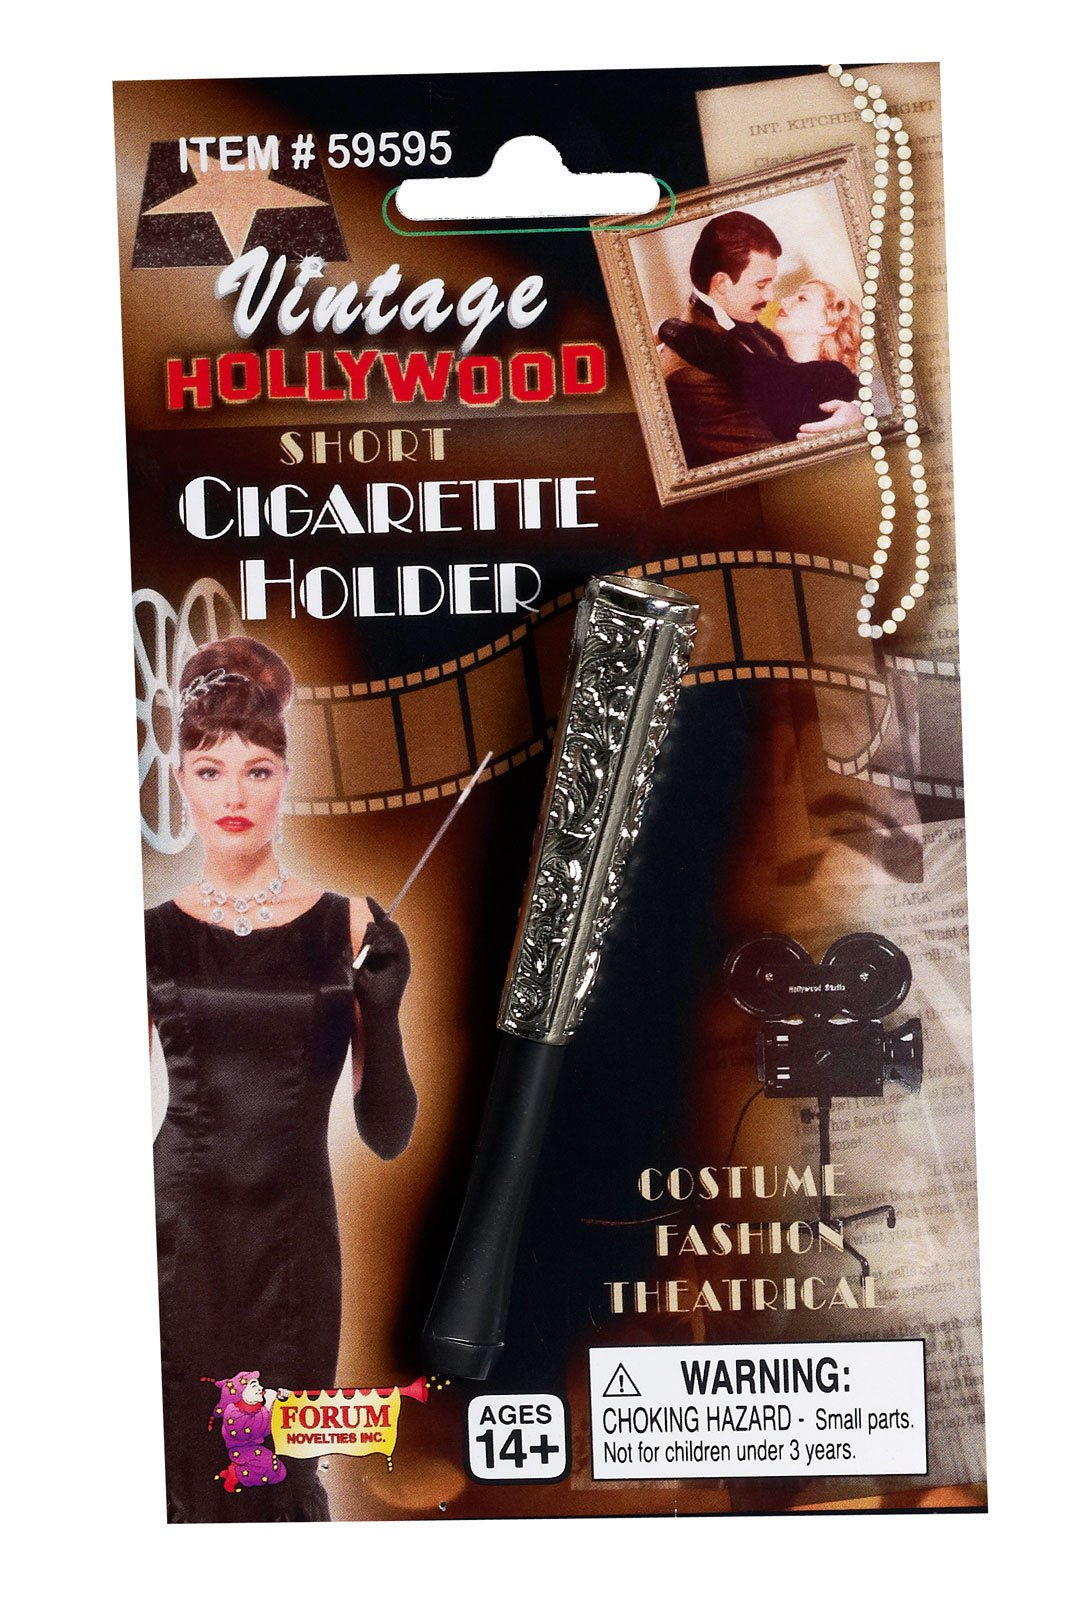 Vintage Hollywood Cigarette Holder